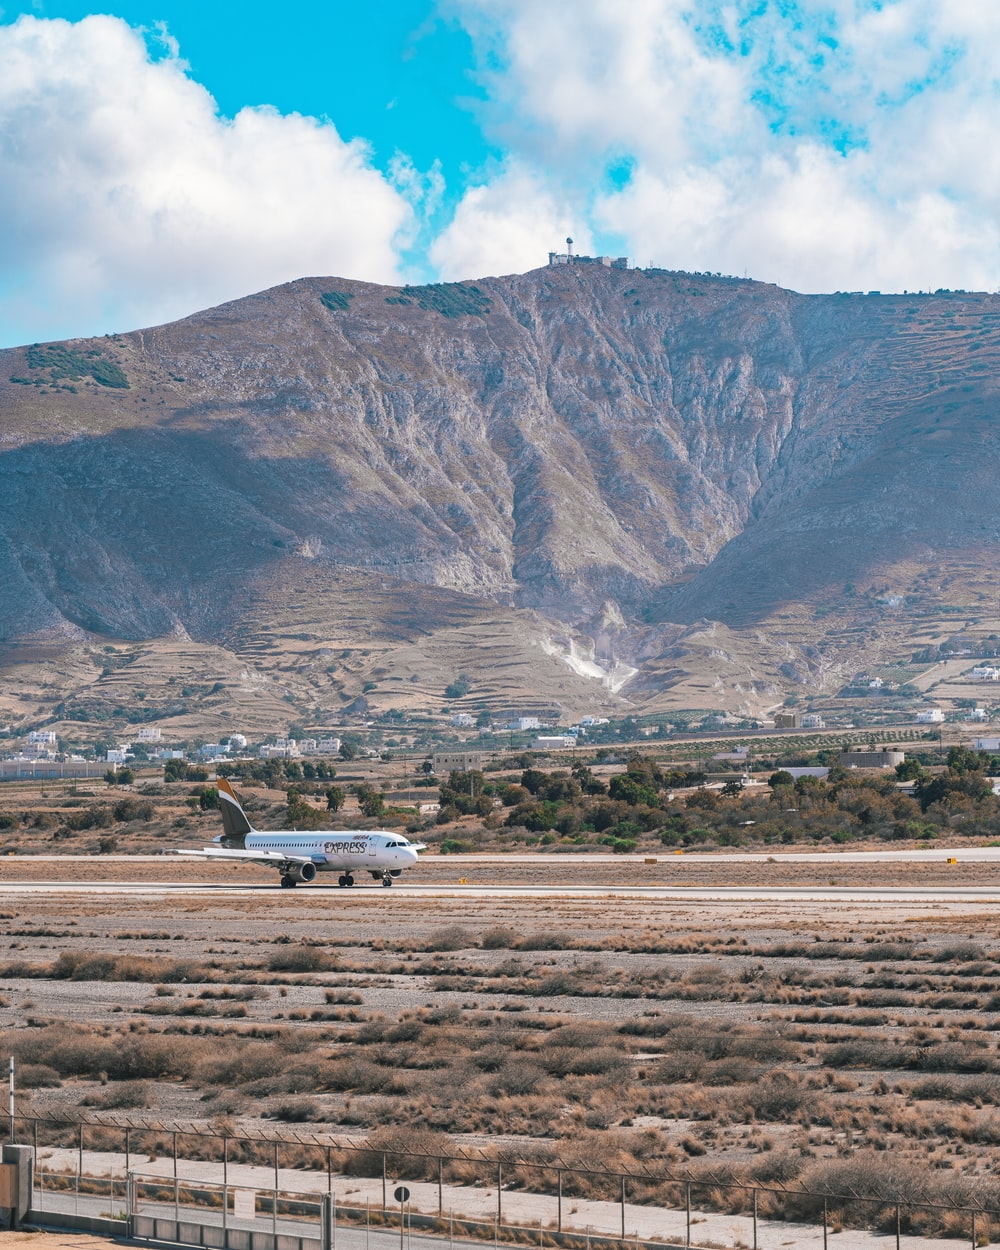 white airplane on brown field near mountain during daytime